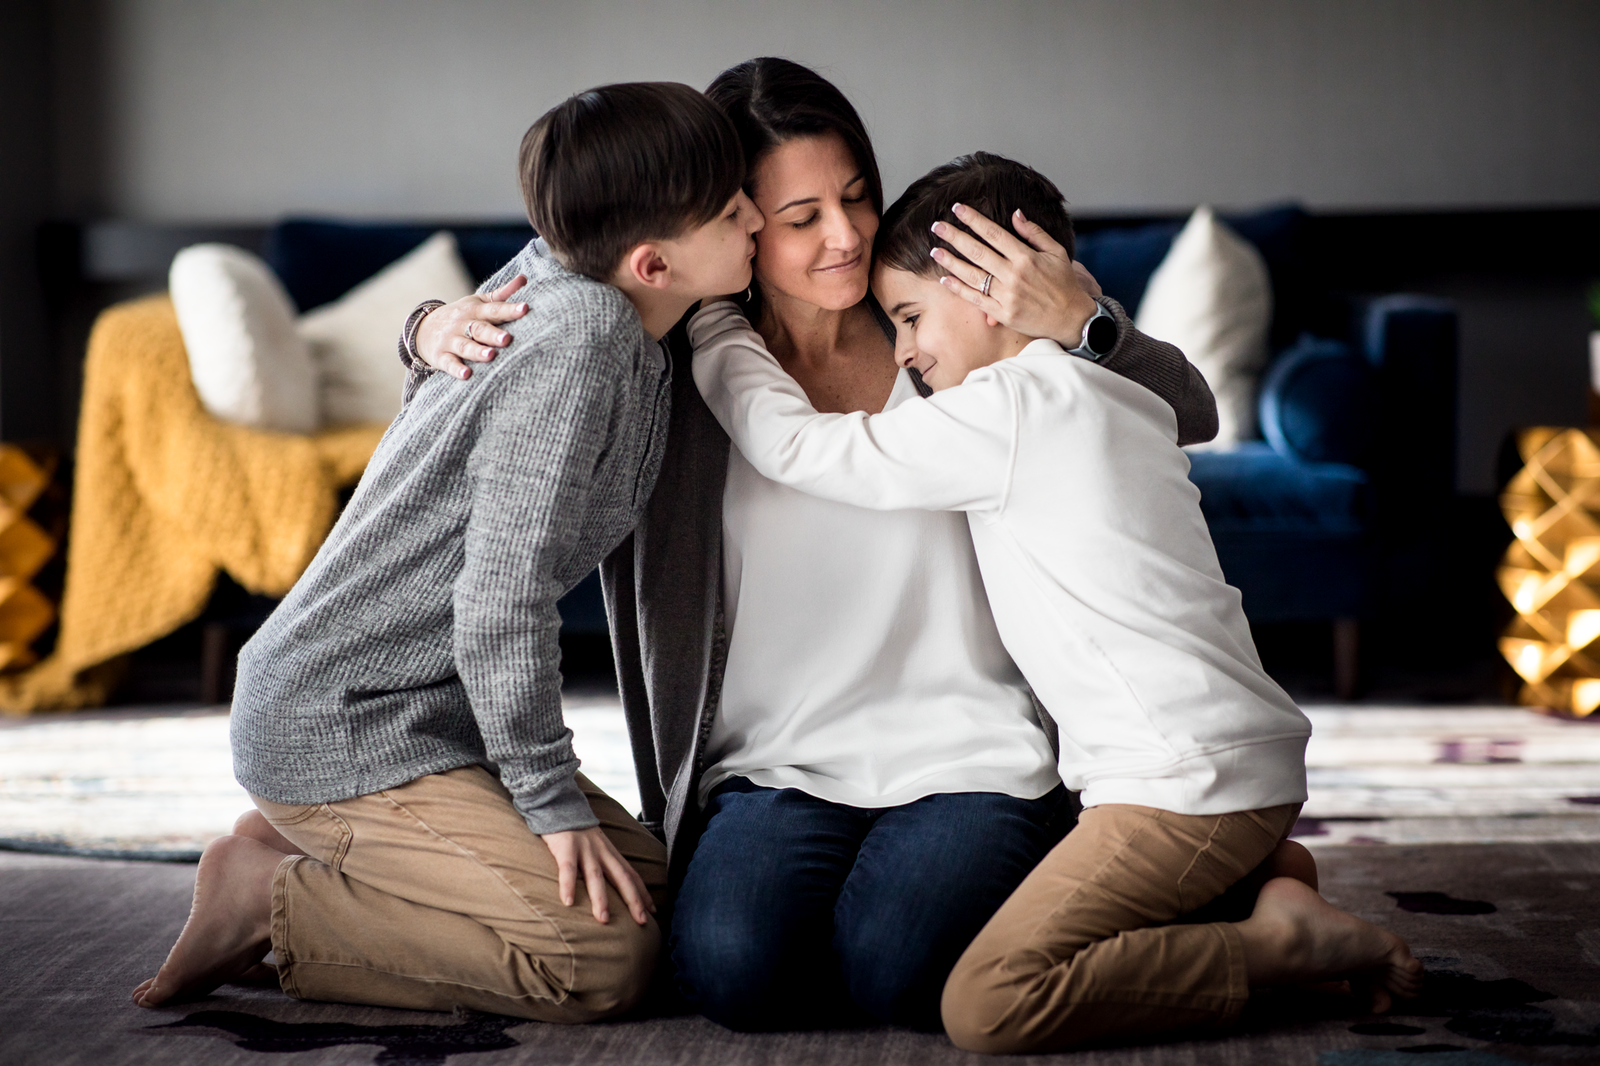 family photographer, columbus, ga, atlanta, wander years, mother hugging sons on floor, ker-fox photography_0792